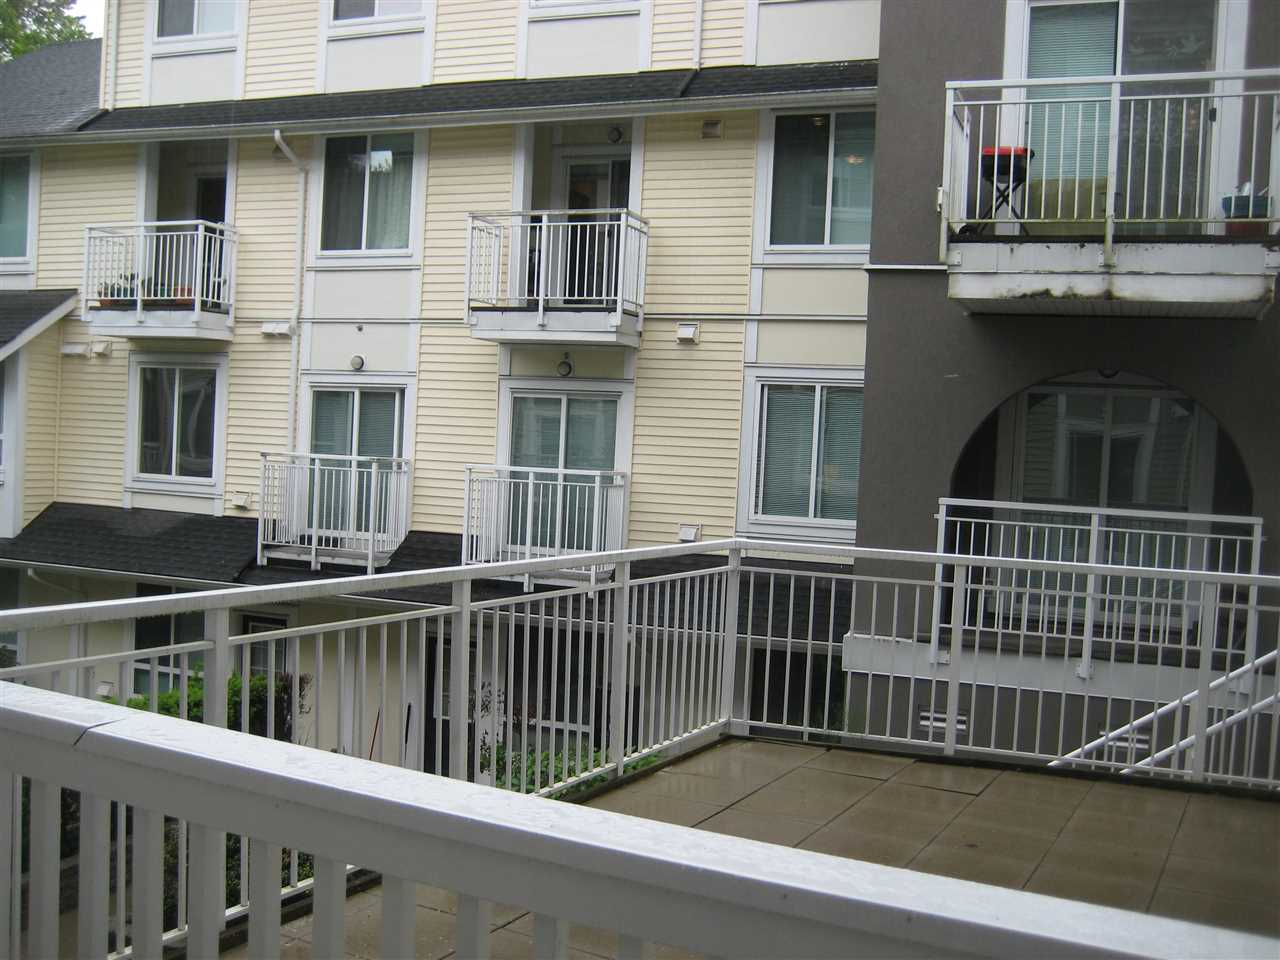 23 6965 HASTINGS STREET - Sperling-Duthie Apartment/Condo for sale, 2 Bedrooms (R2482053) - #11